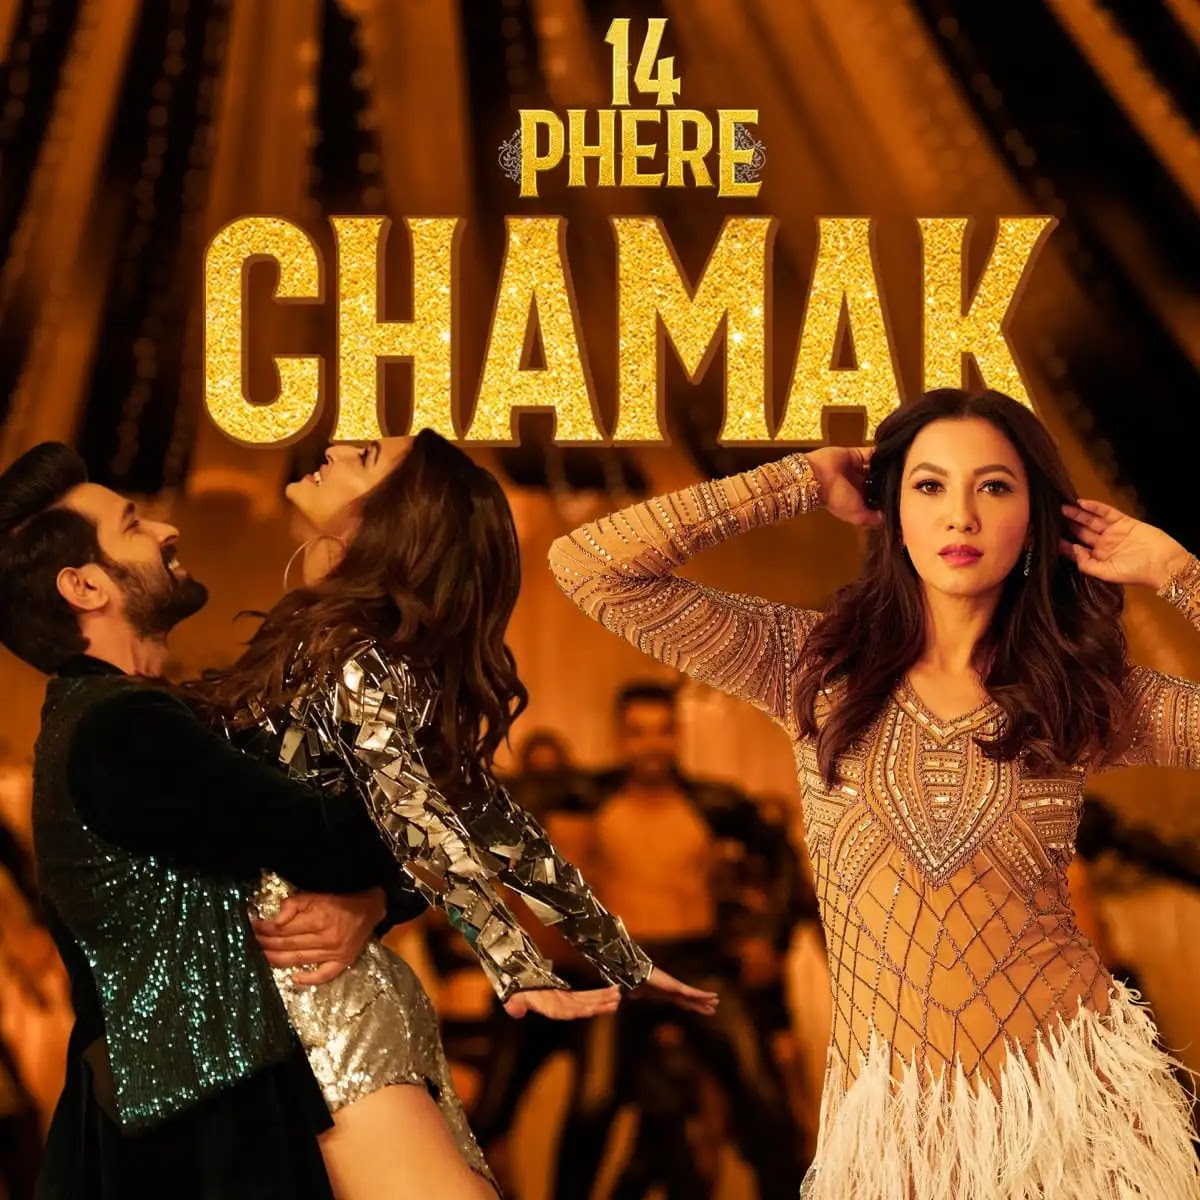 Chamak 14 Phere Mp3 Song Download 320kbps Free